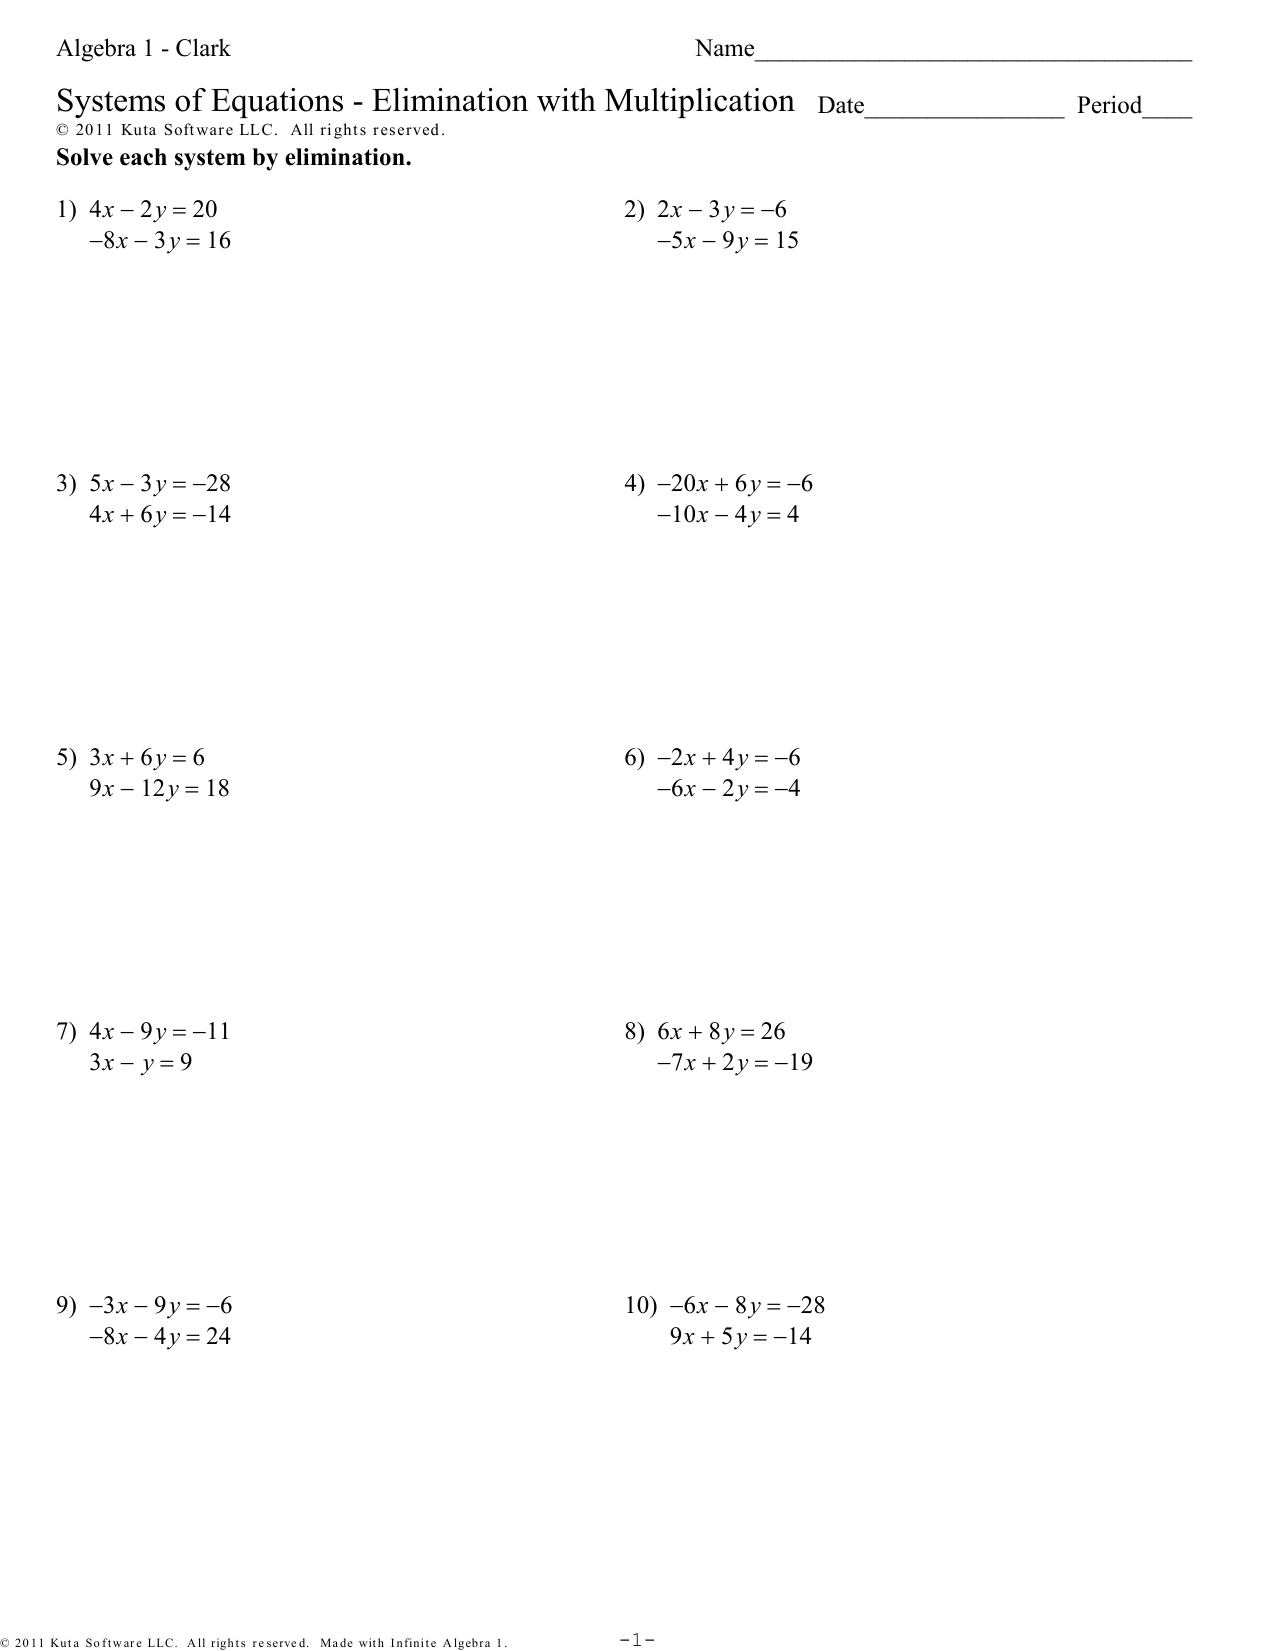 Algebra 1 - Clark - Systems Of Equations - Elimination With